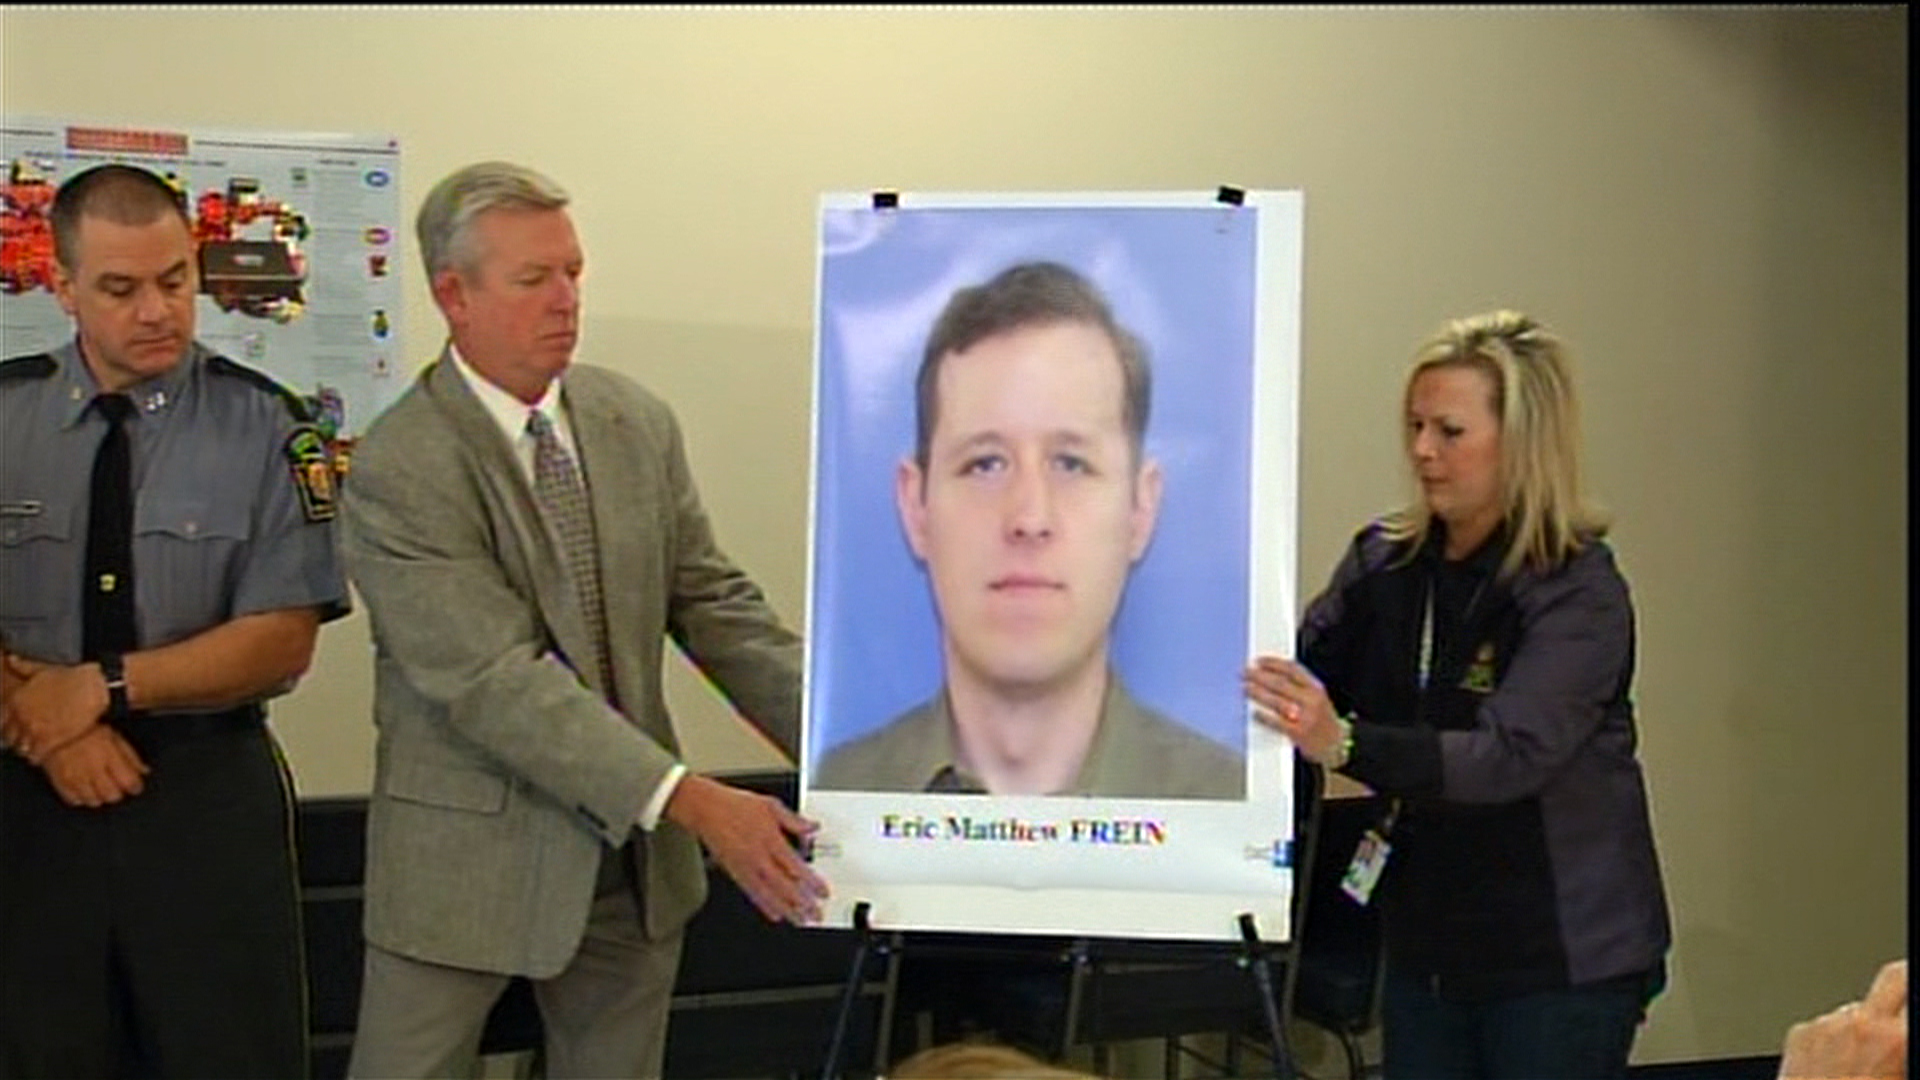 Manhunt for Eric Matthew Frein, Suspect in Pennsylvania Ambush